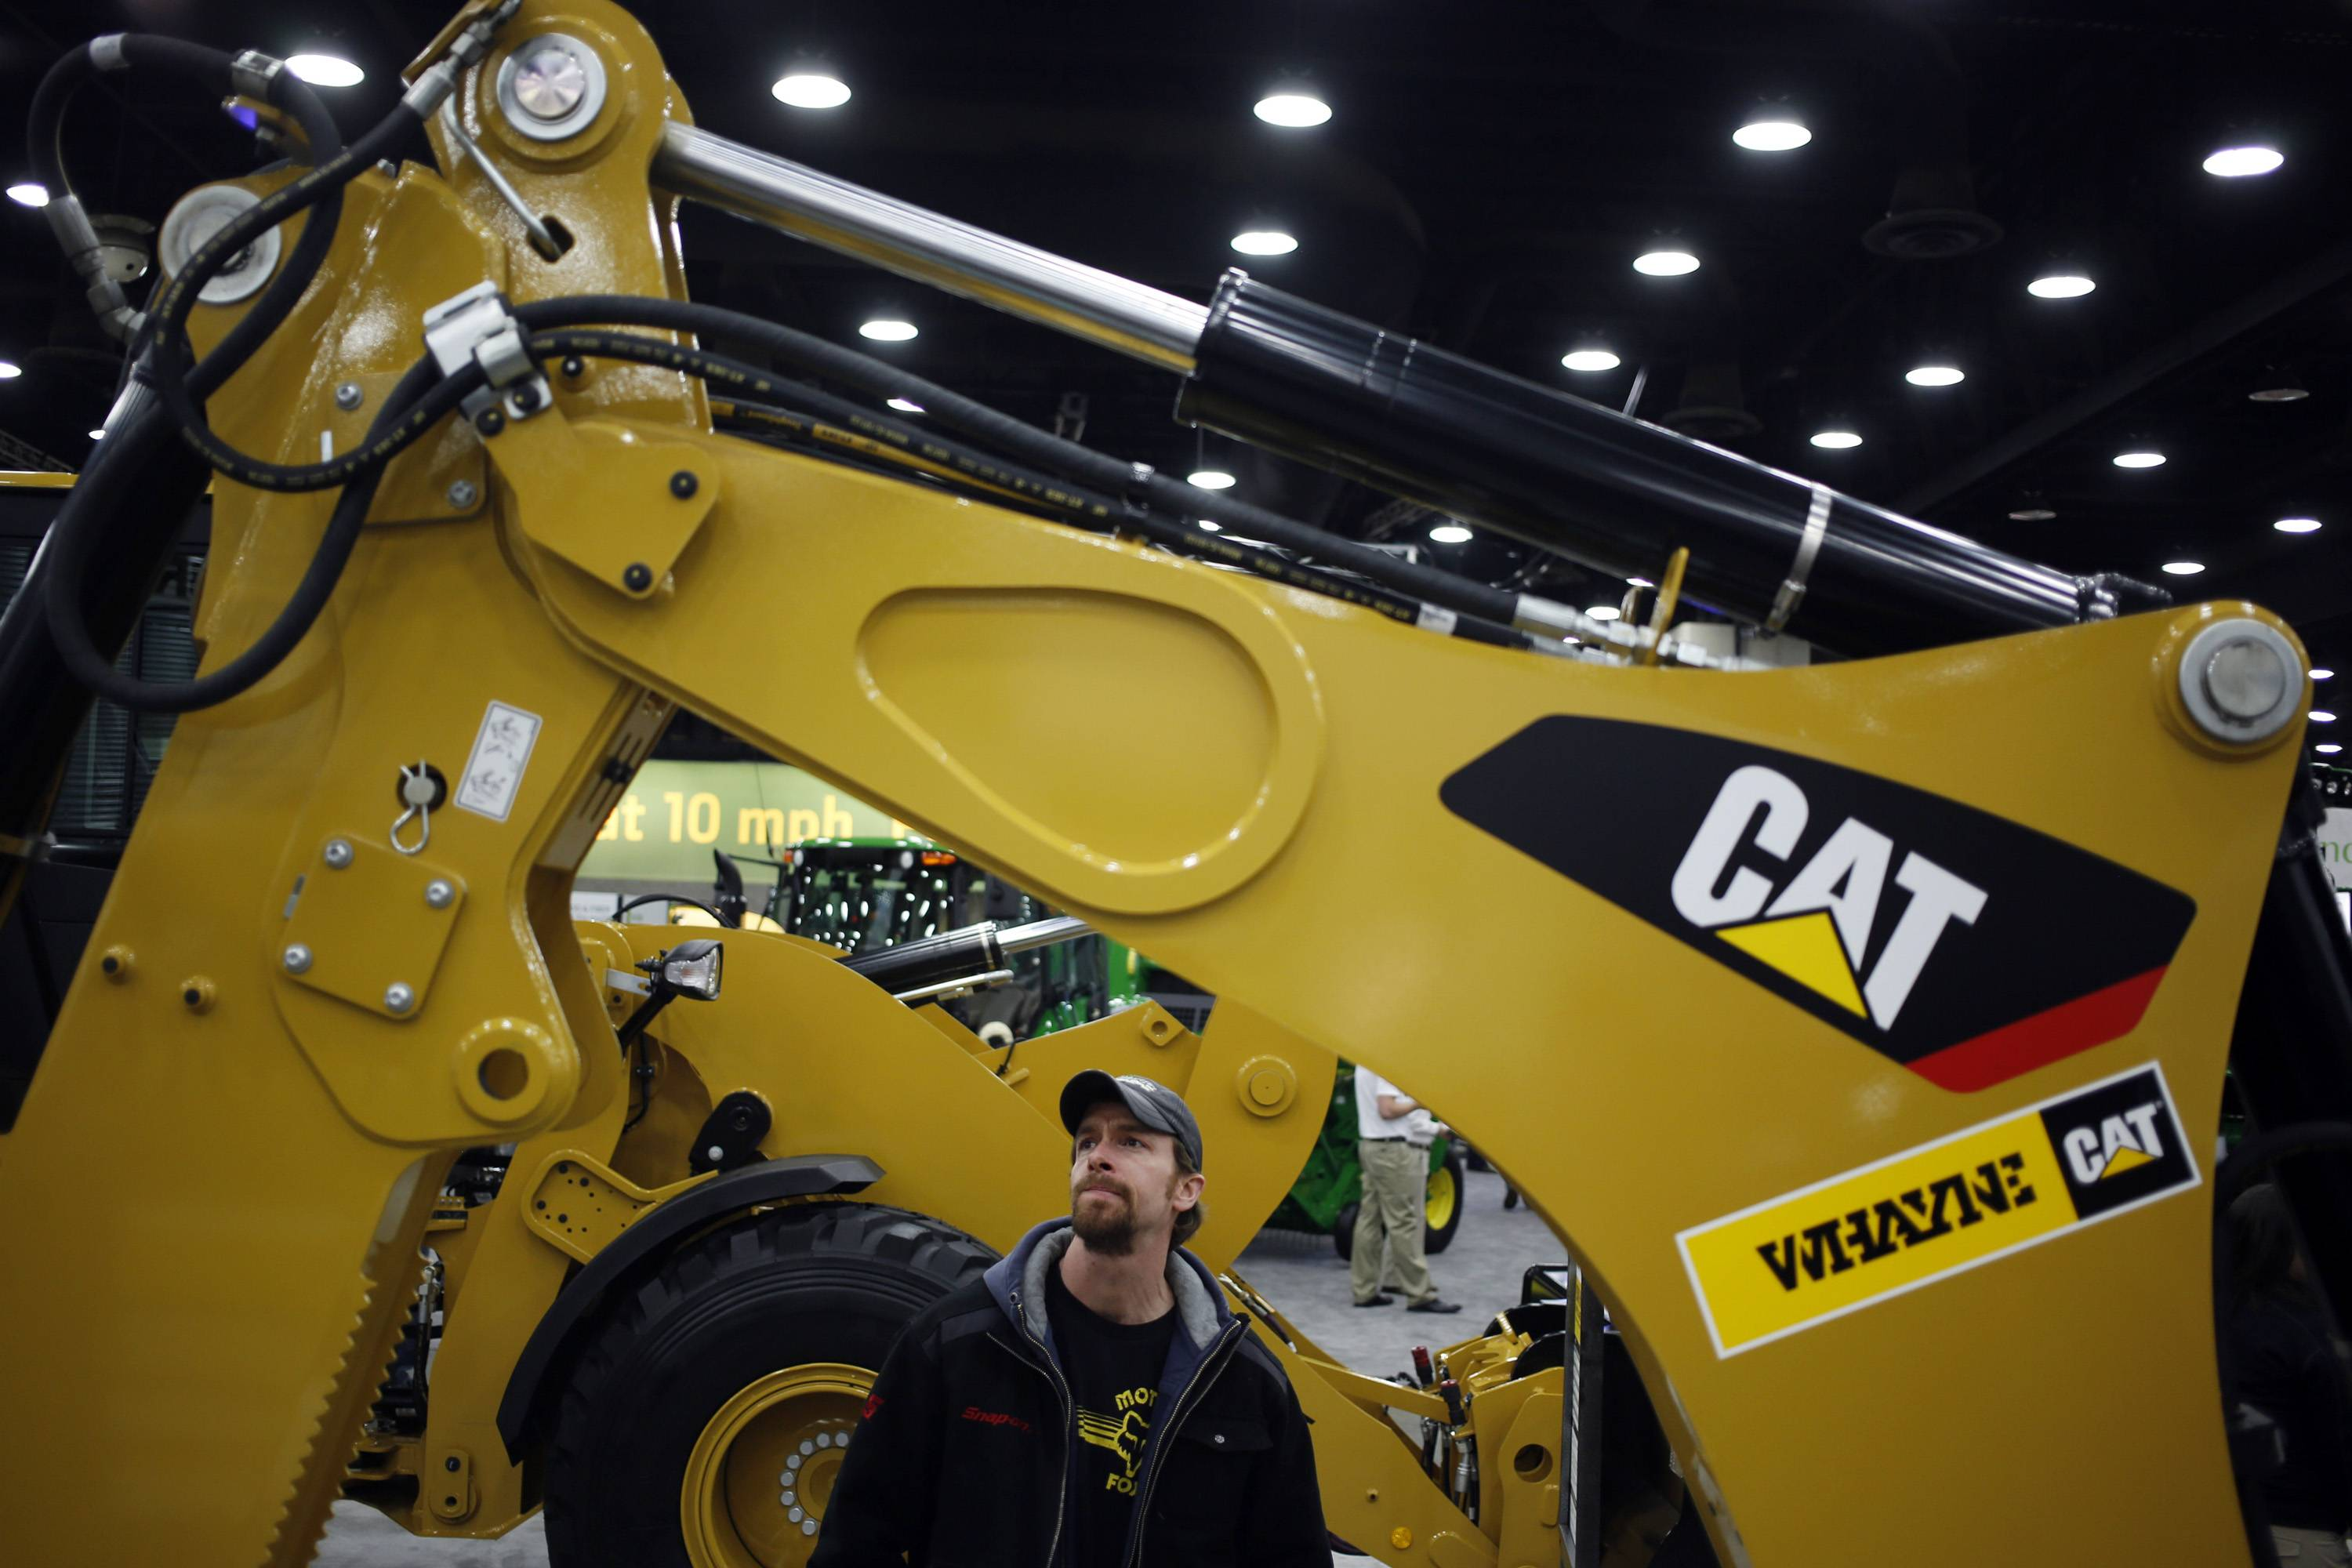 An attendee examines a Caterpillar Inc. backhoe loader at the National Farm Machinery Show in Louisville.